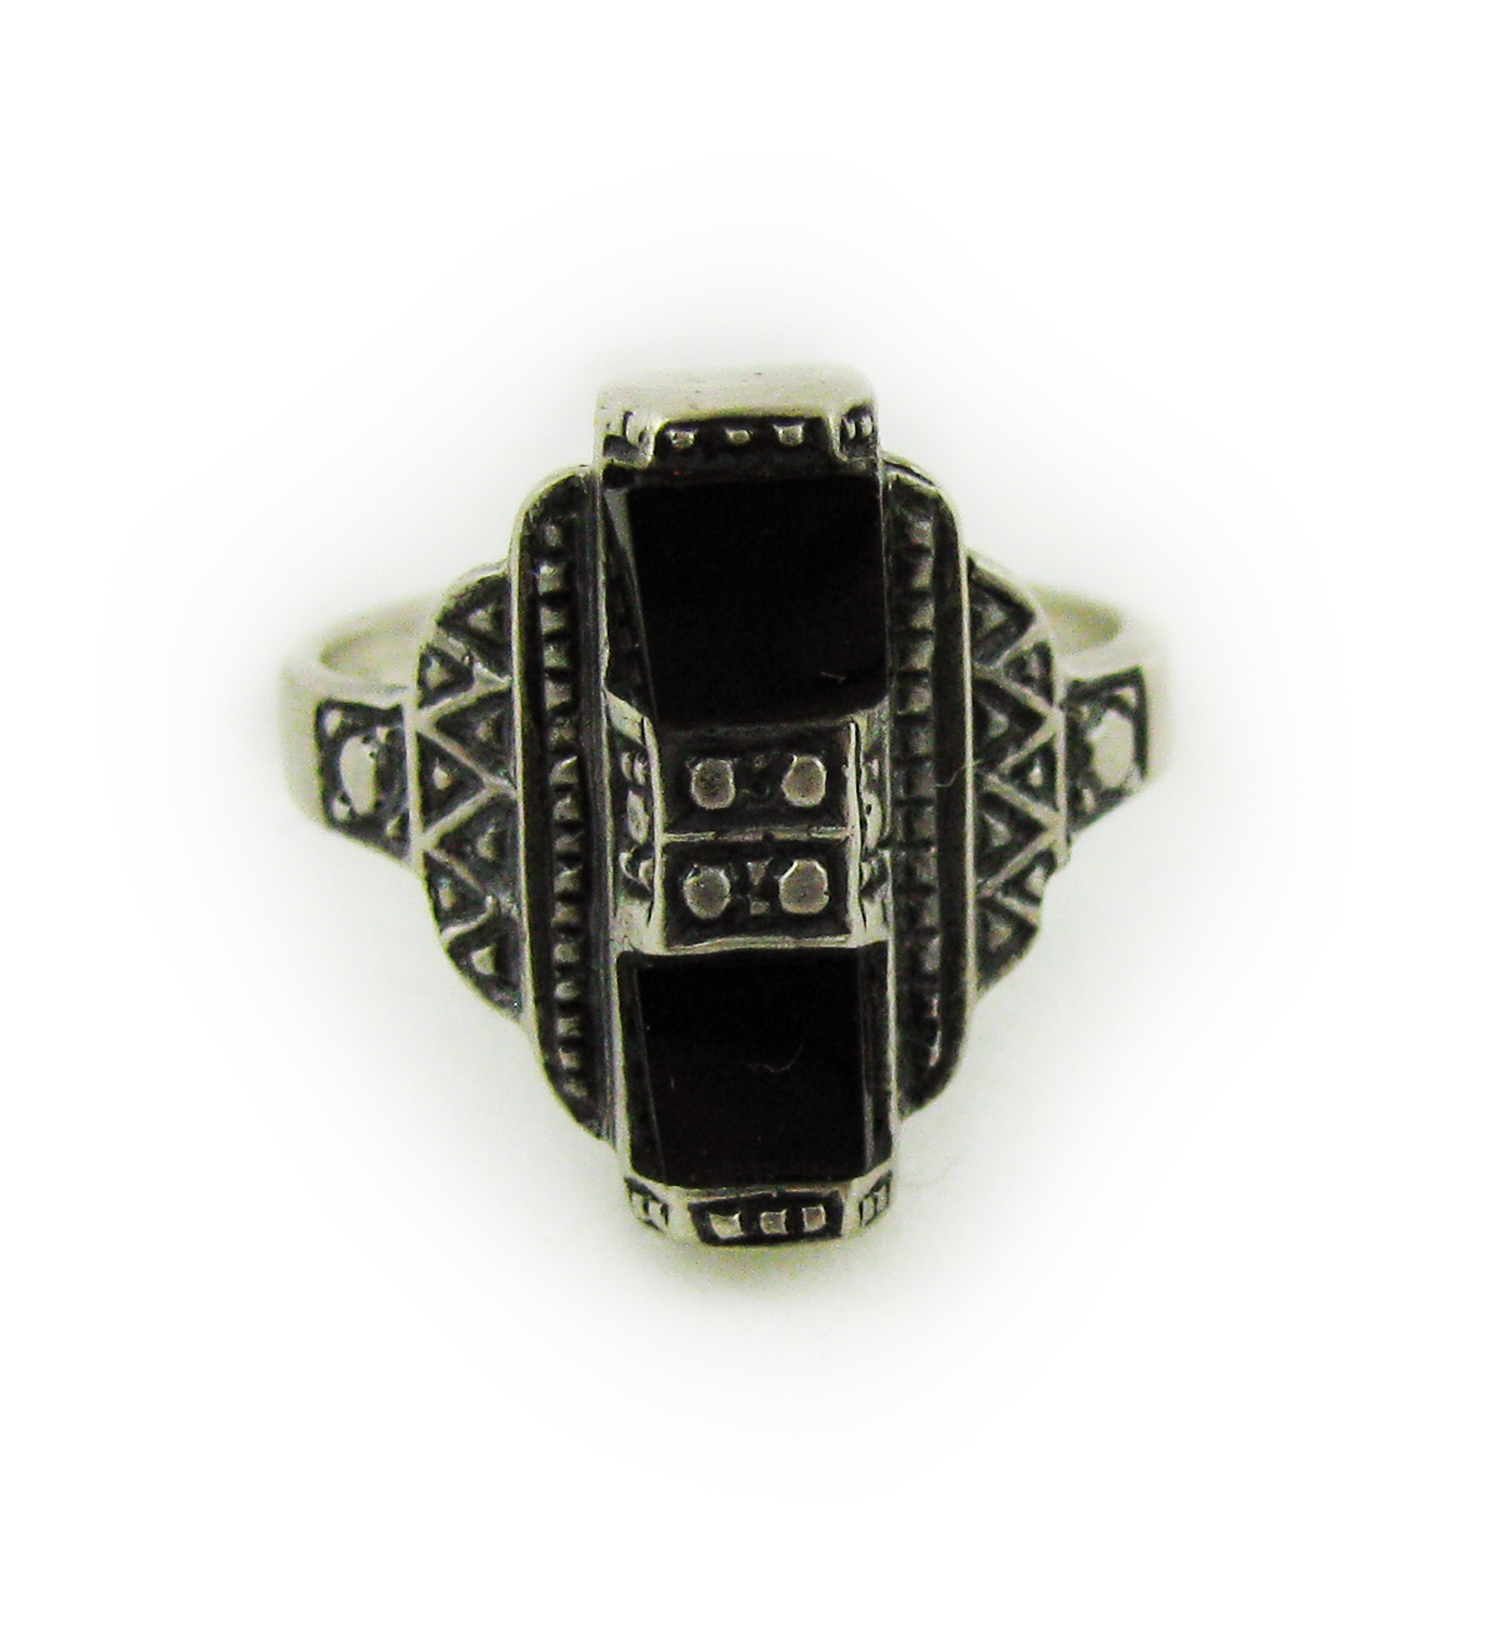 1930s Art Deco Onyx and Silver Ring